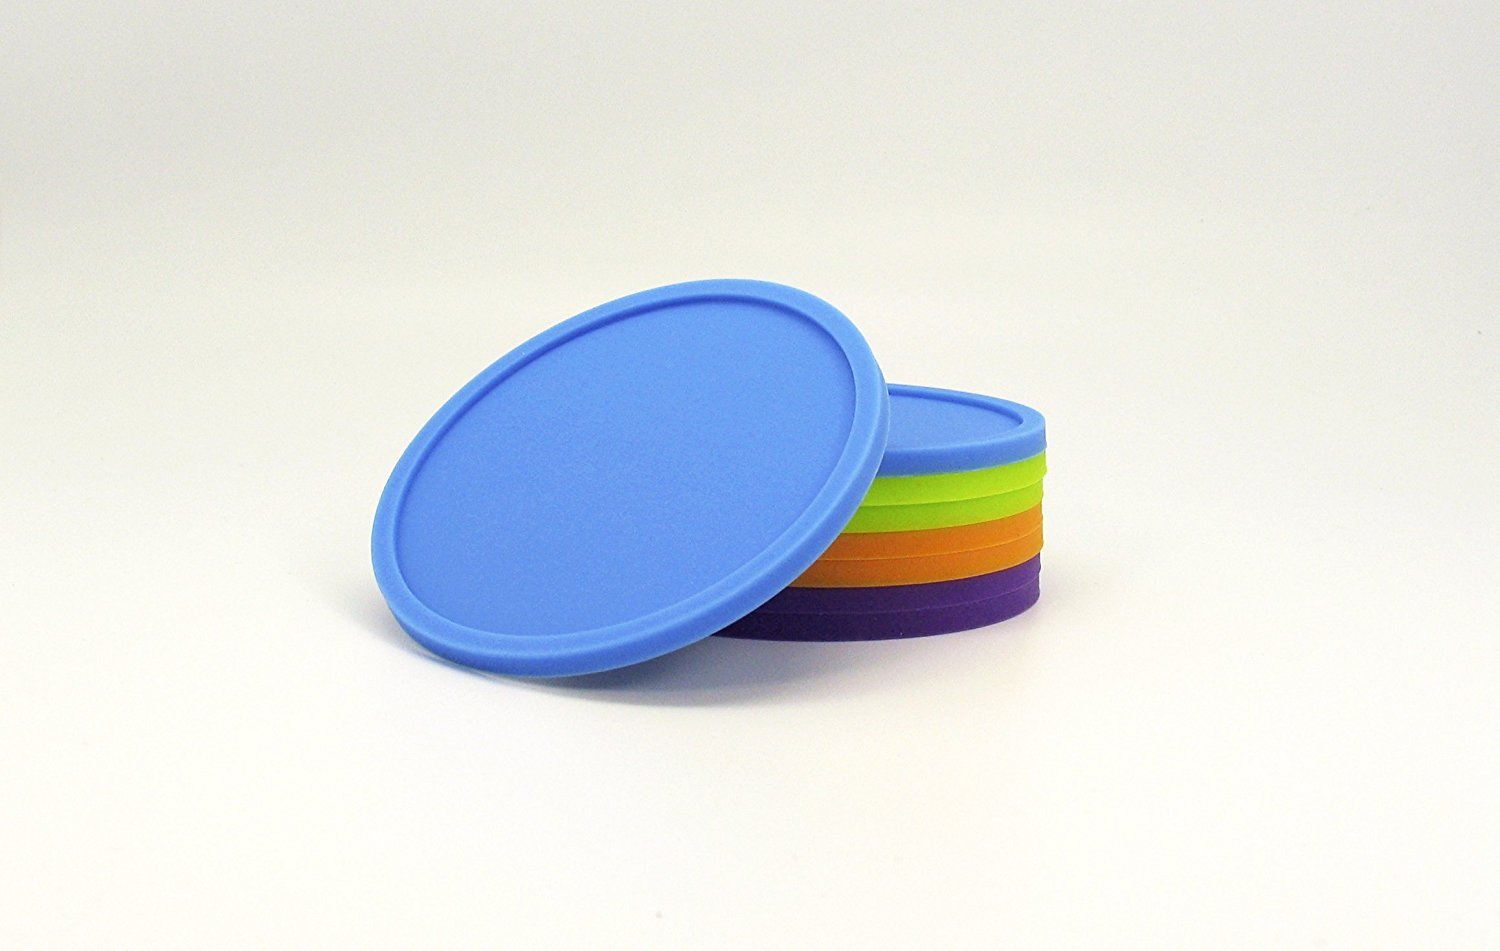 Table Kitchen Assorted Color Office Set of 8 Silicone Drink Coasters Non Slip Grip Great for Home Desk